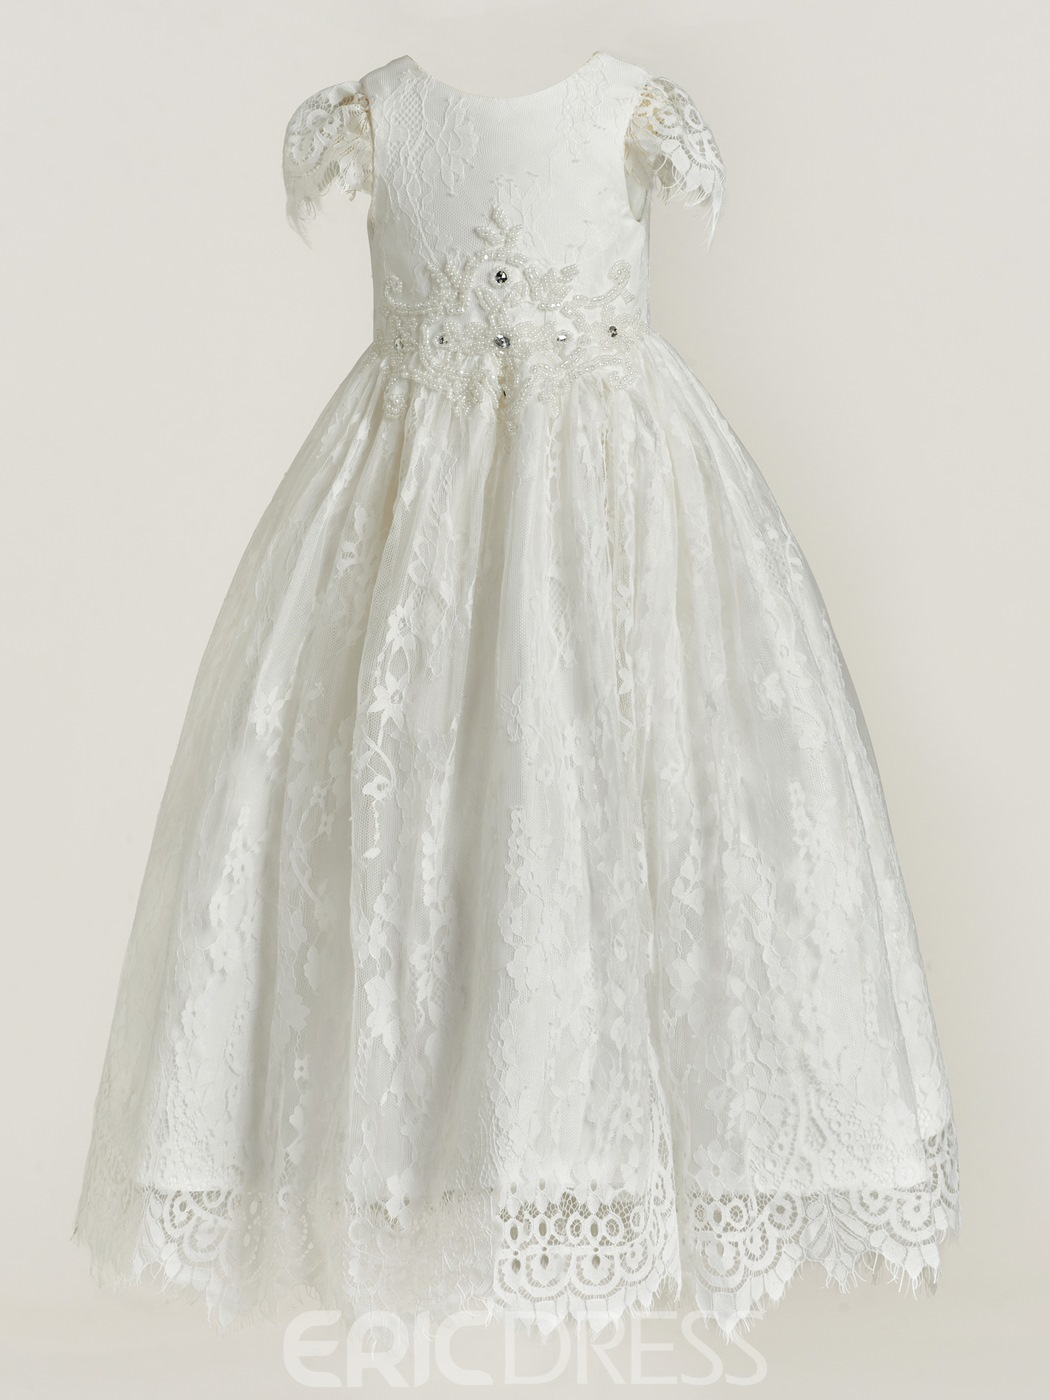 Ericdress Baby Girls Lace Christening Baptism Gown 12855580 ...